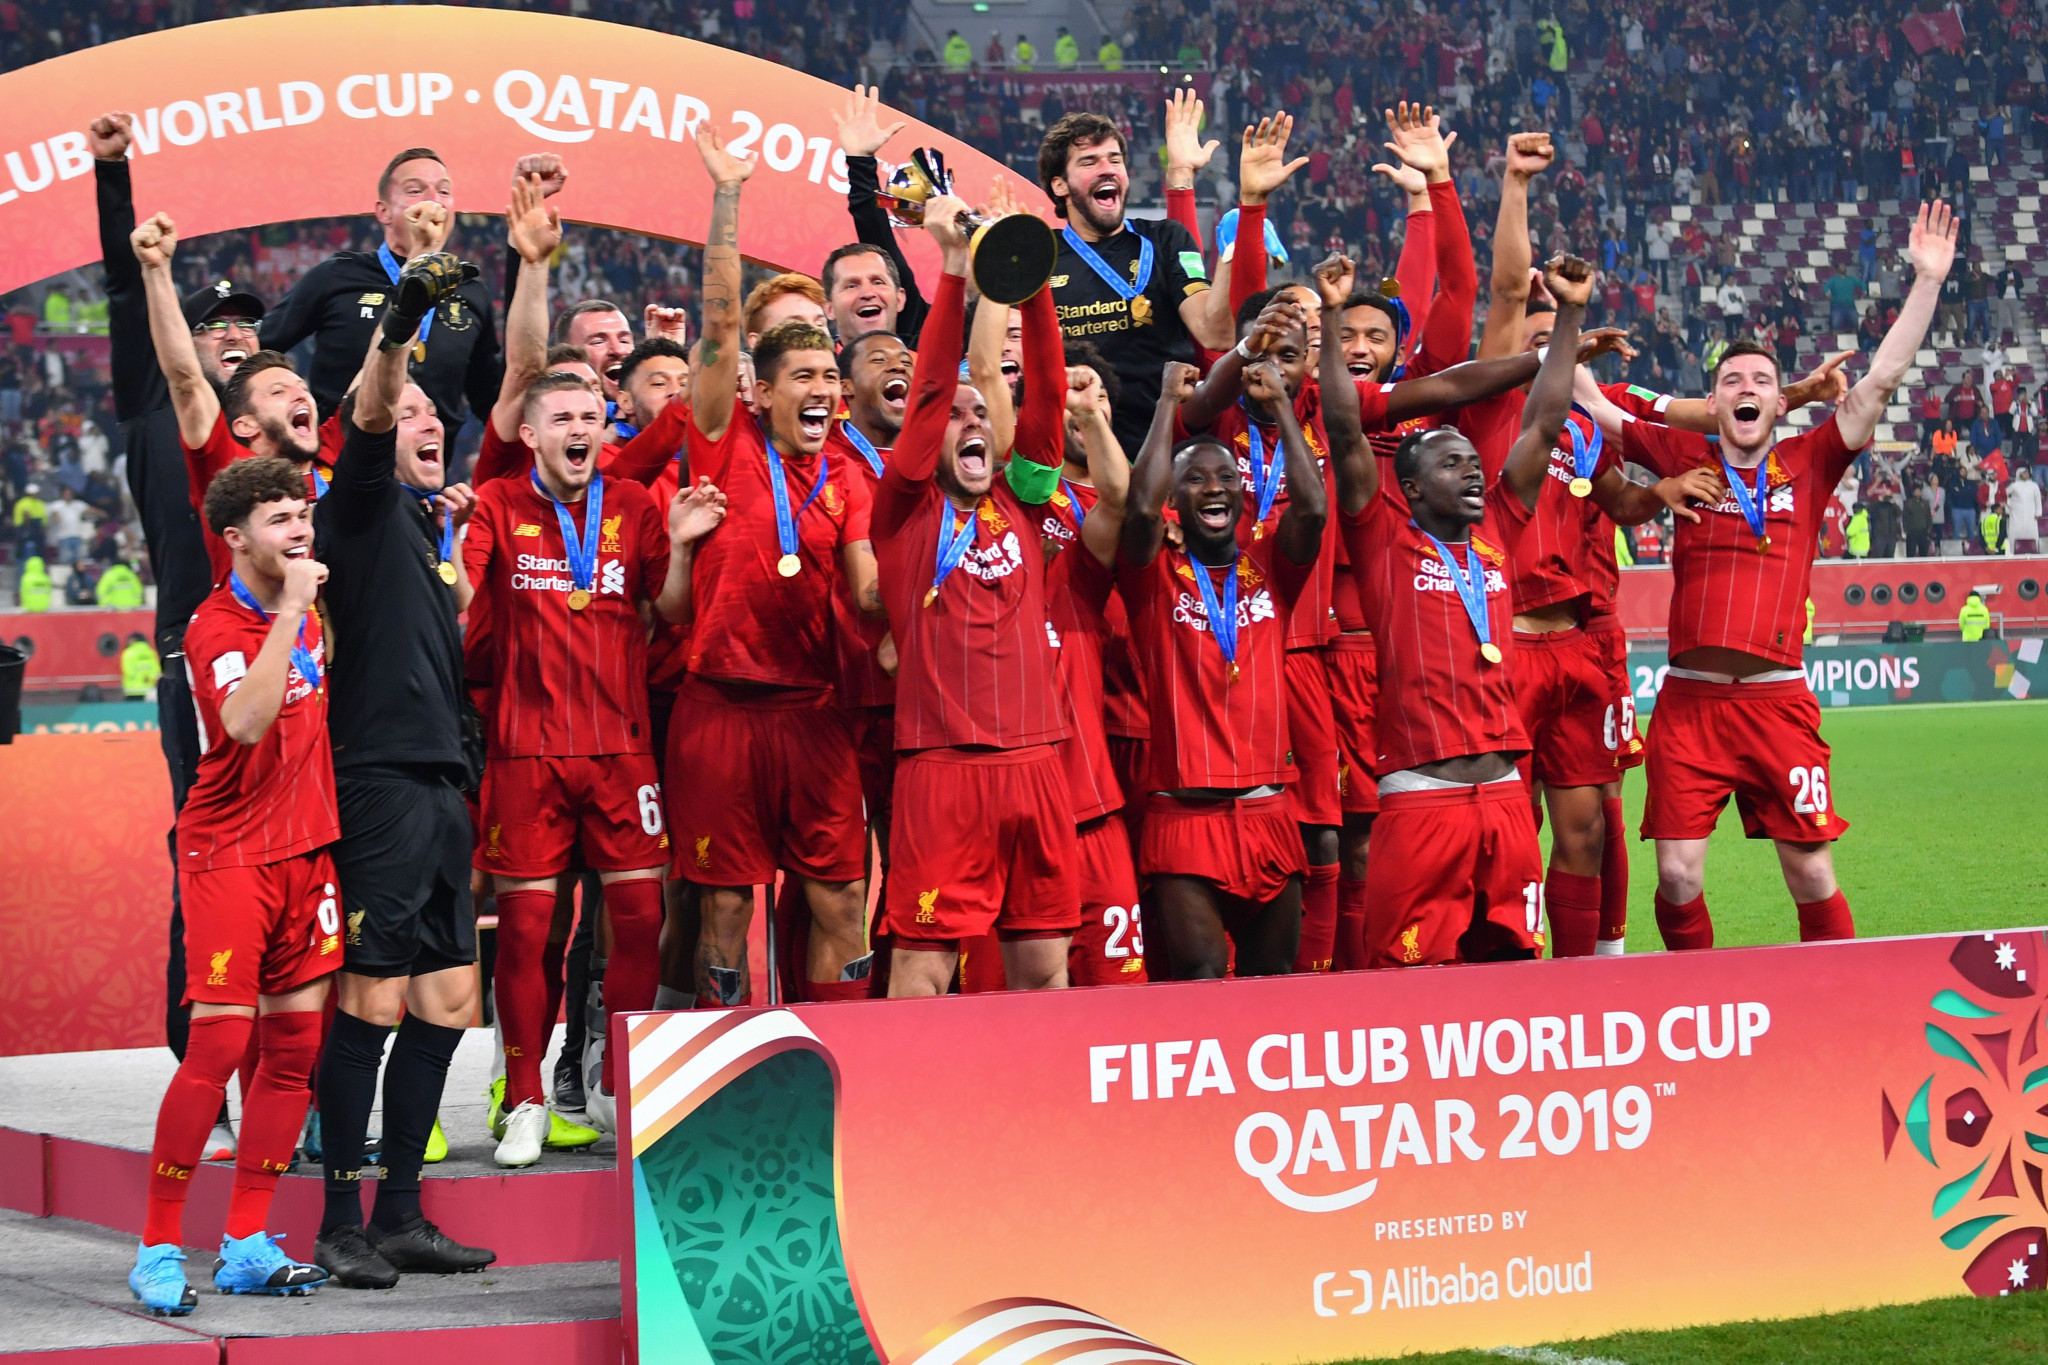 FIFA reschedules Club World Cup and cancels women's age group tournaments